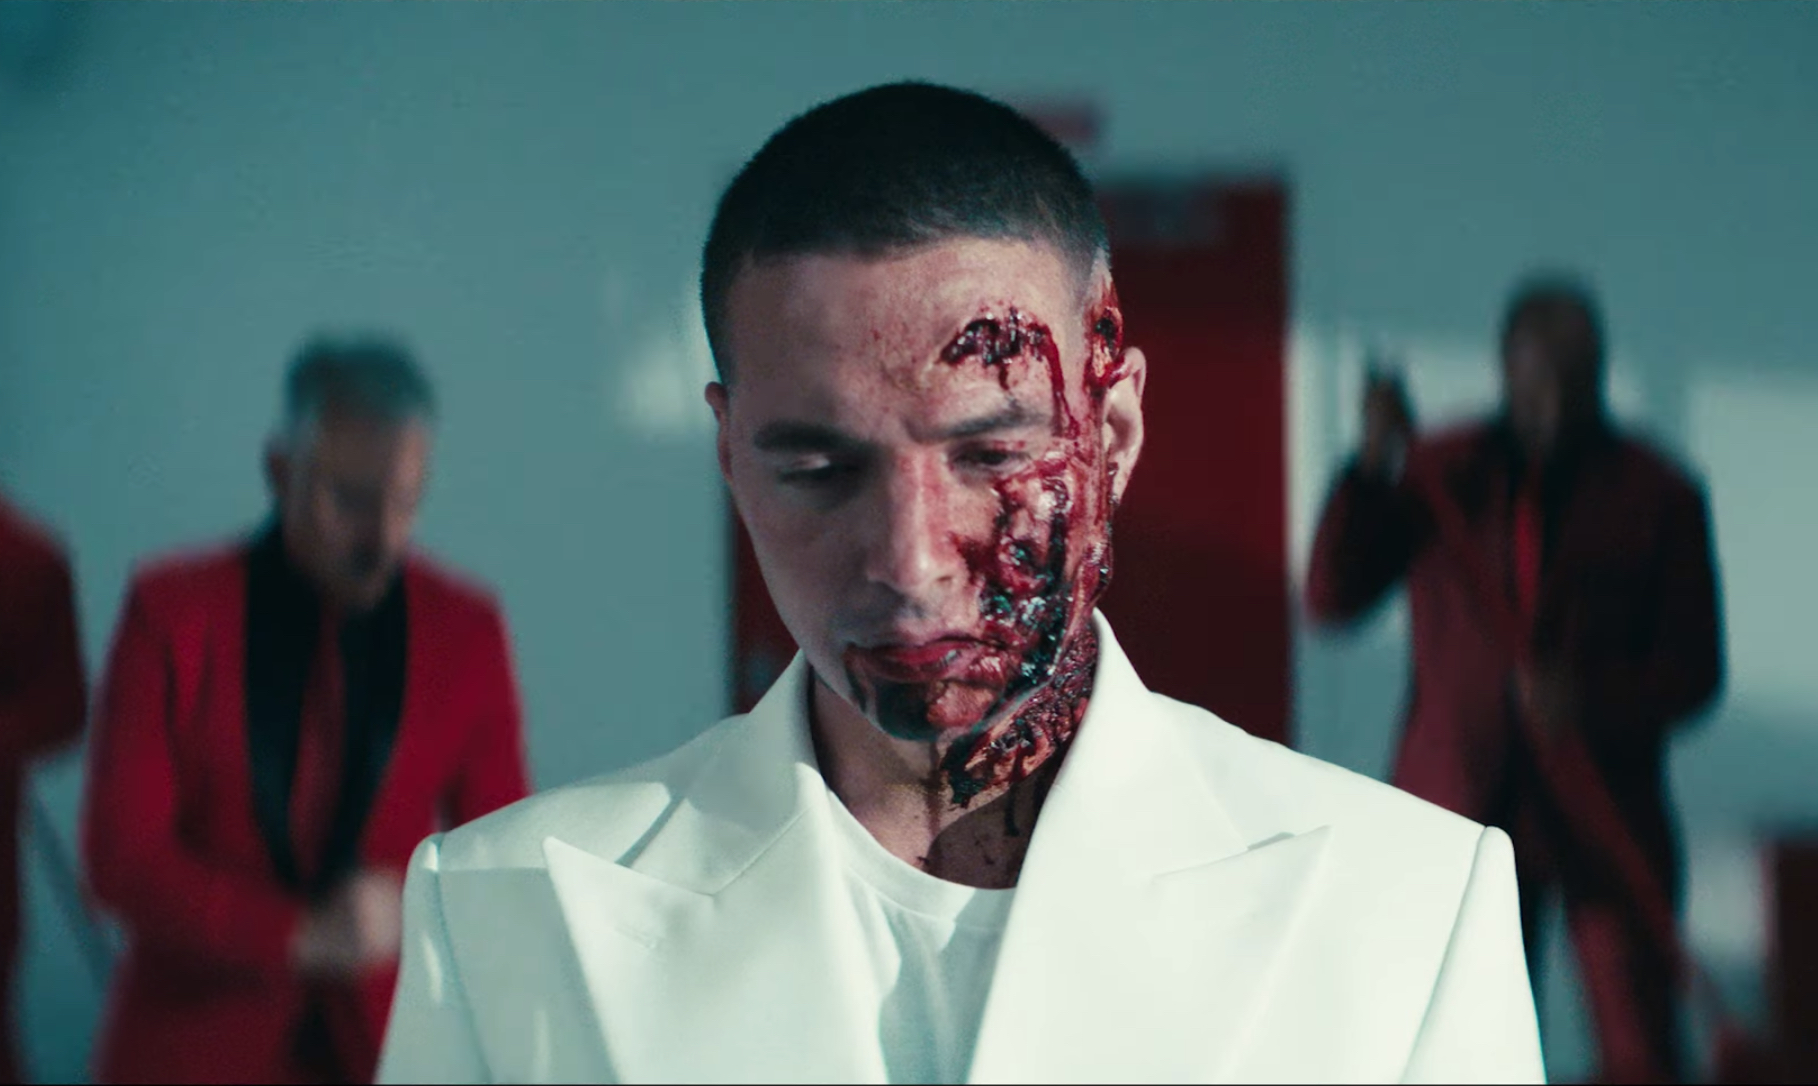 J Balvin Gets Bloody in Haunting New 'Rojo' Video